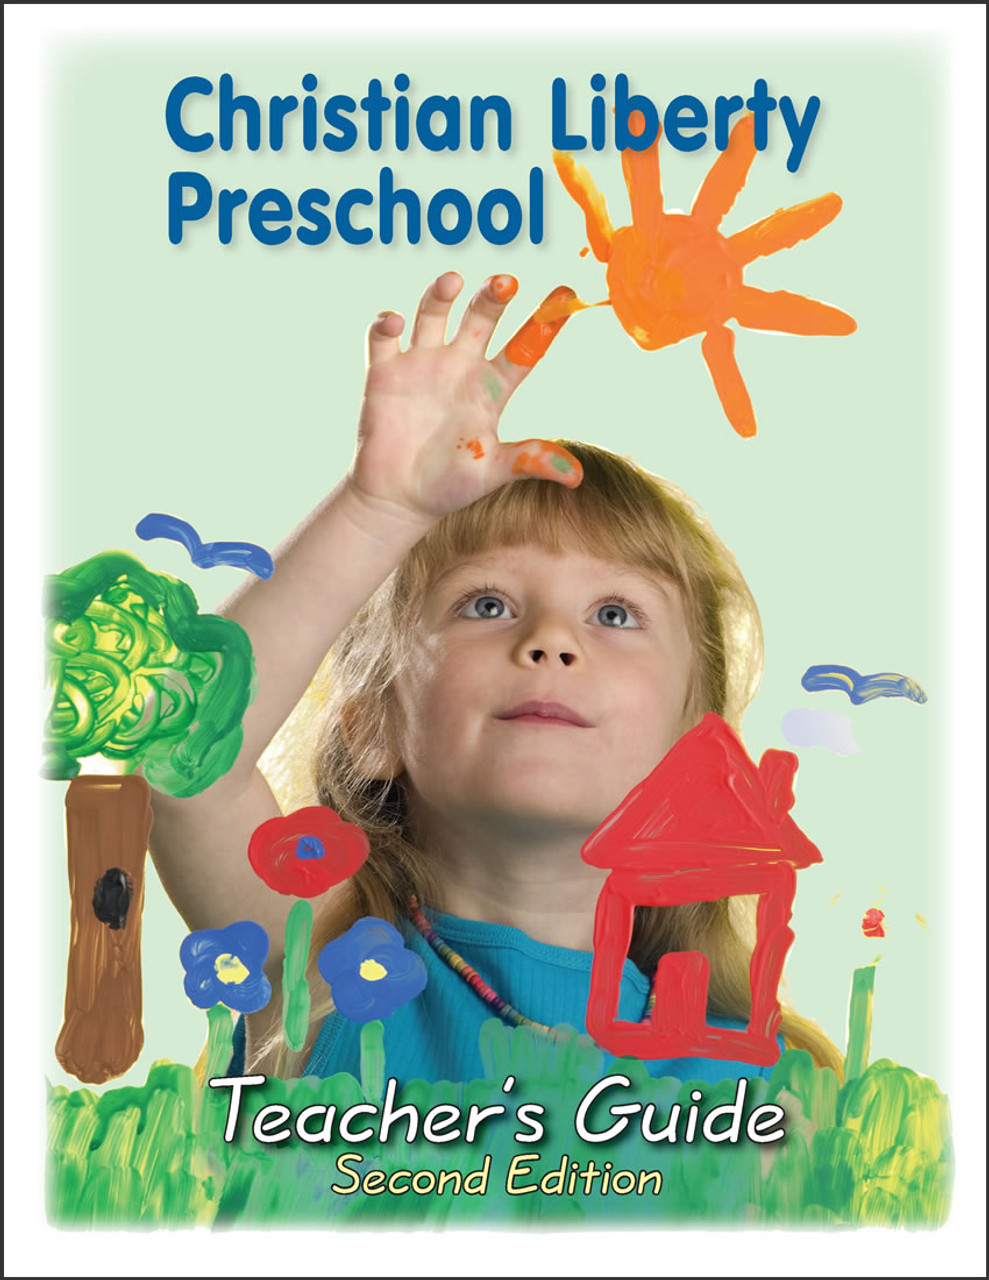 Christian Liberty Preschool Teacher's Guide, 2nd edition